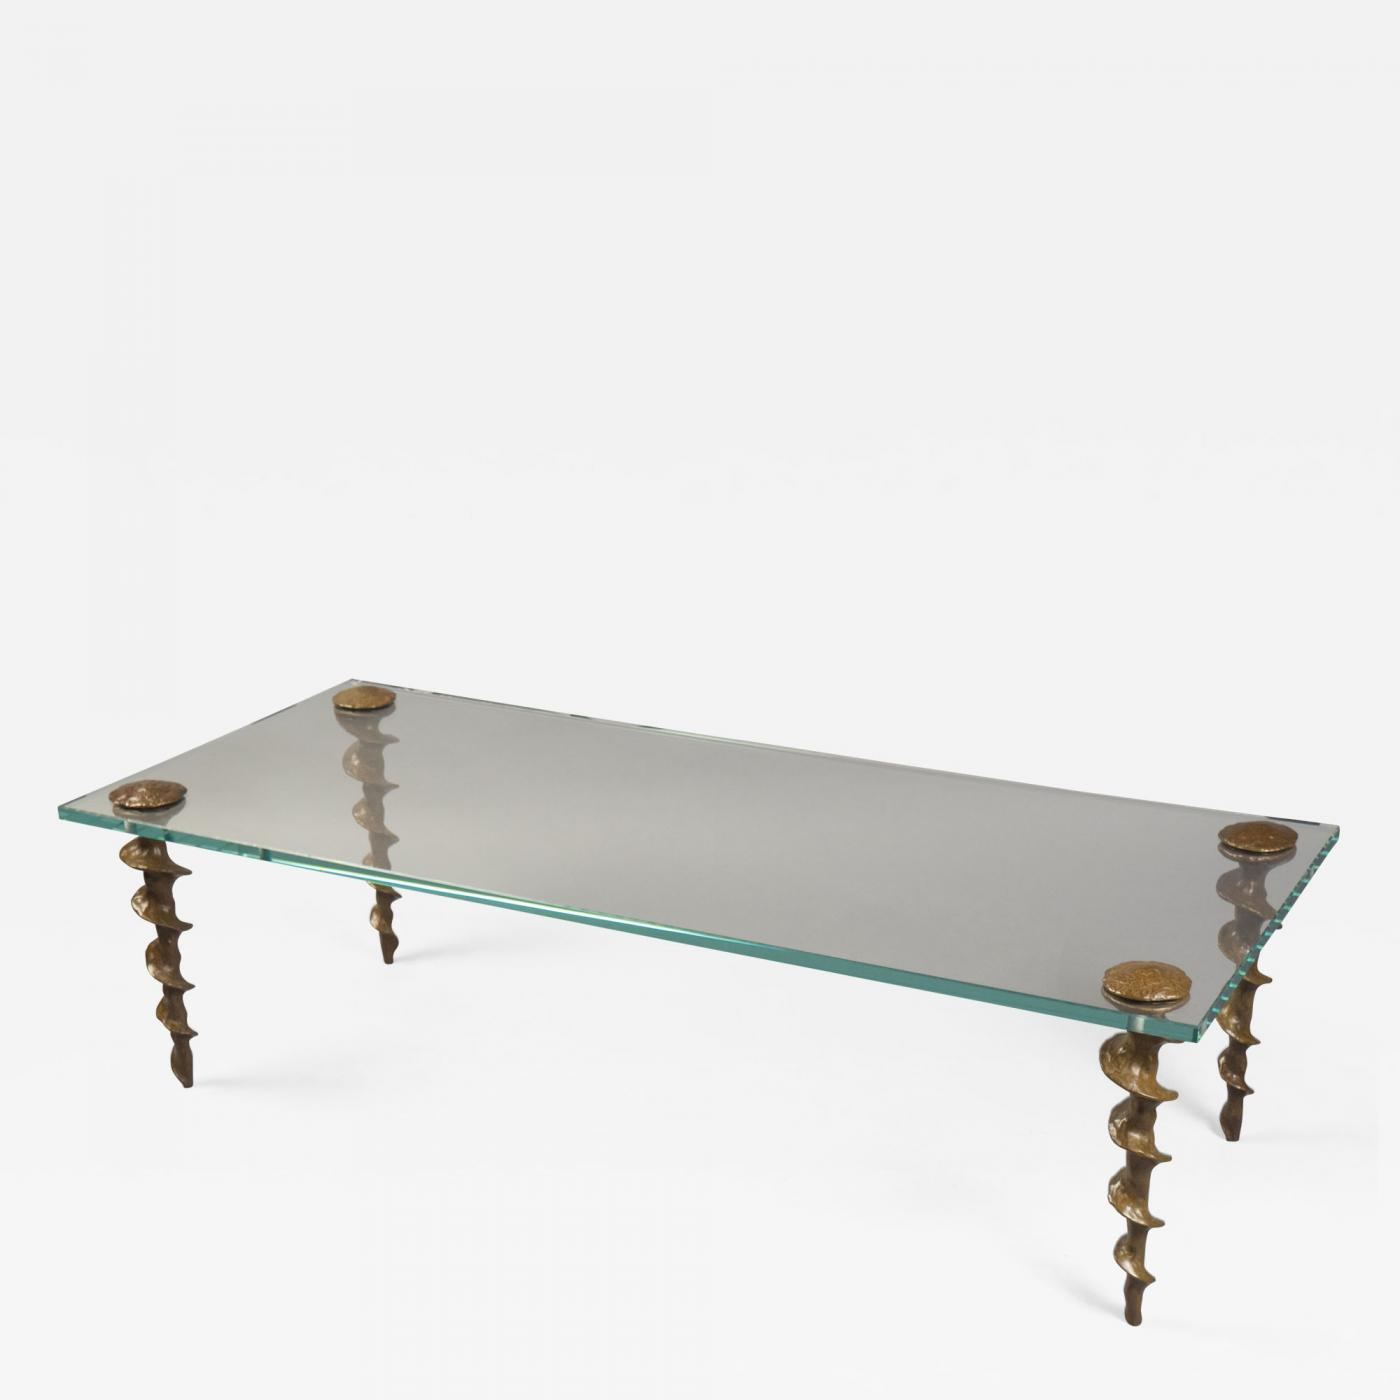 Glass And Bronze Coffee Table By Franck Evennou, France, 2018